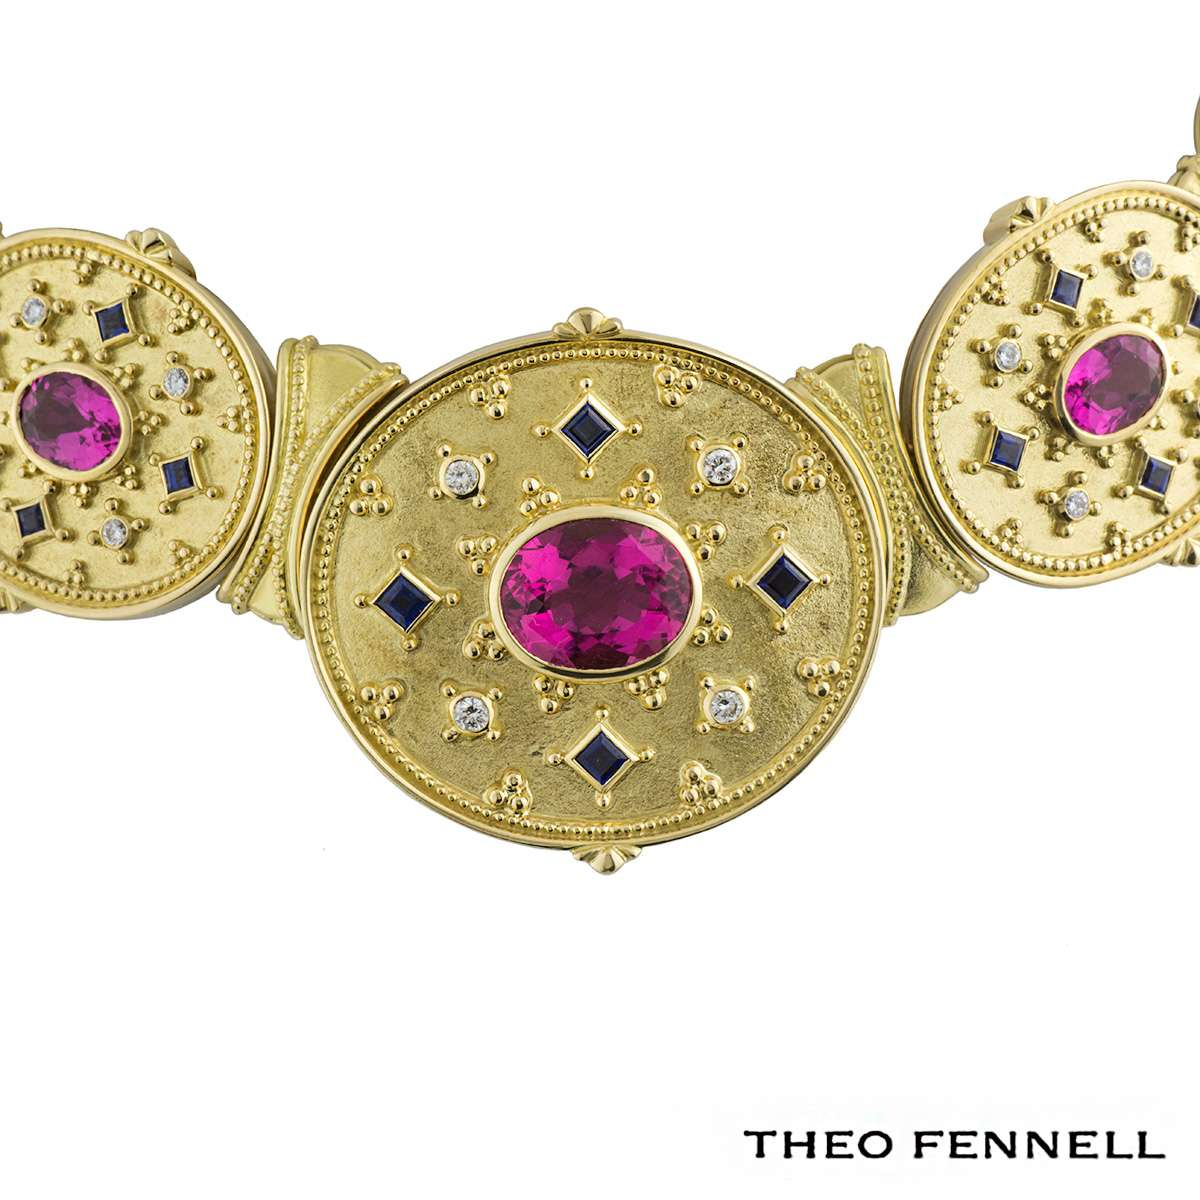 Theo Fennell Diamond, Sapphire & Tourmaline Jewellery Suite